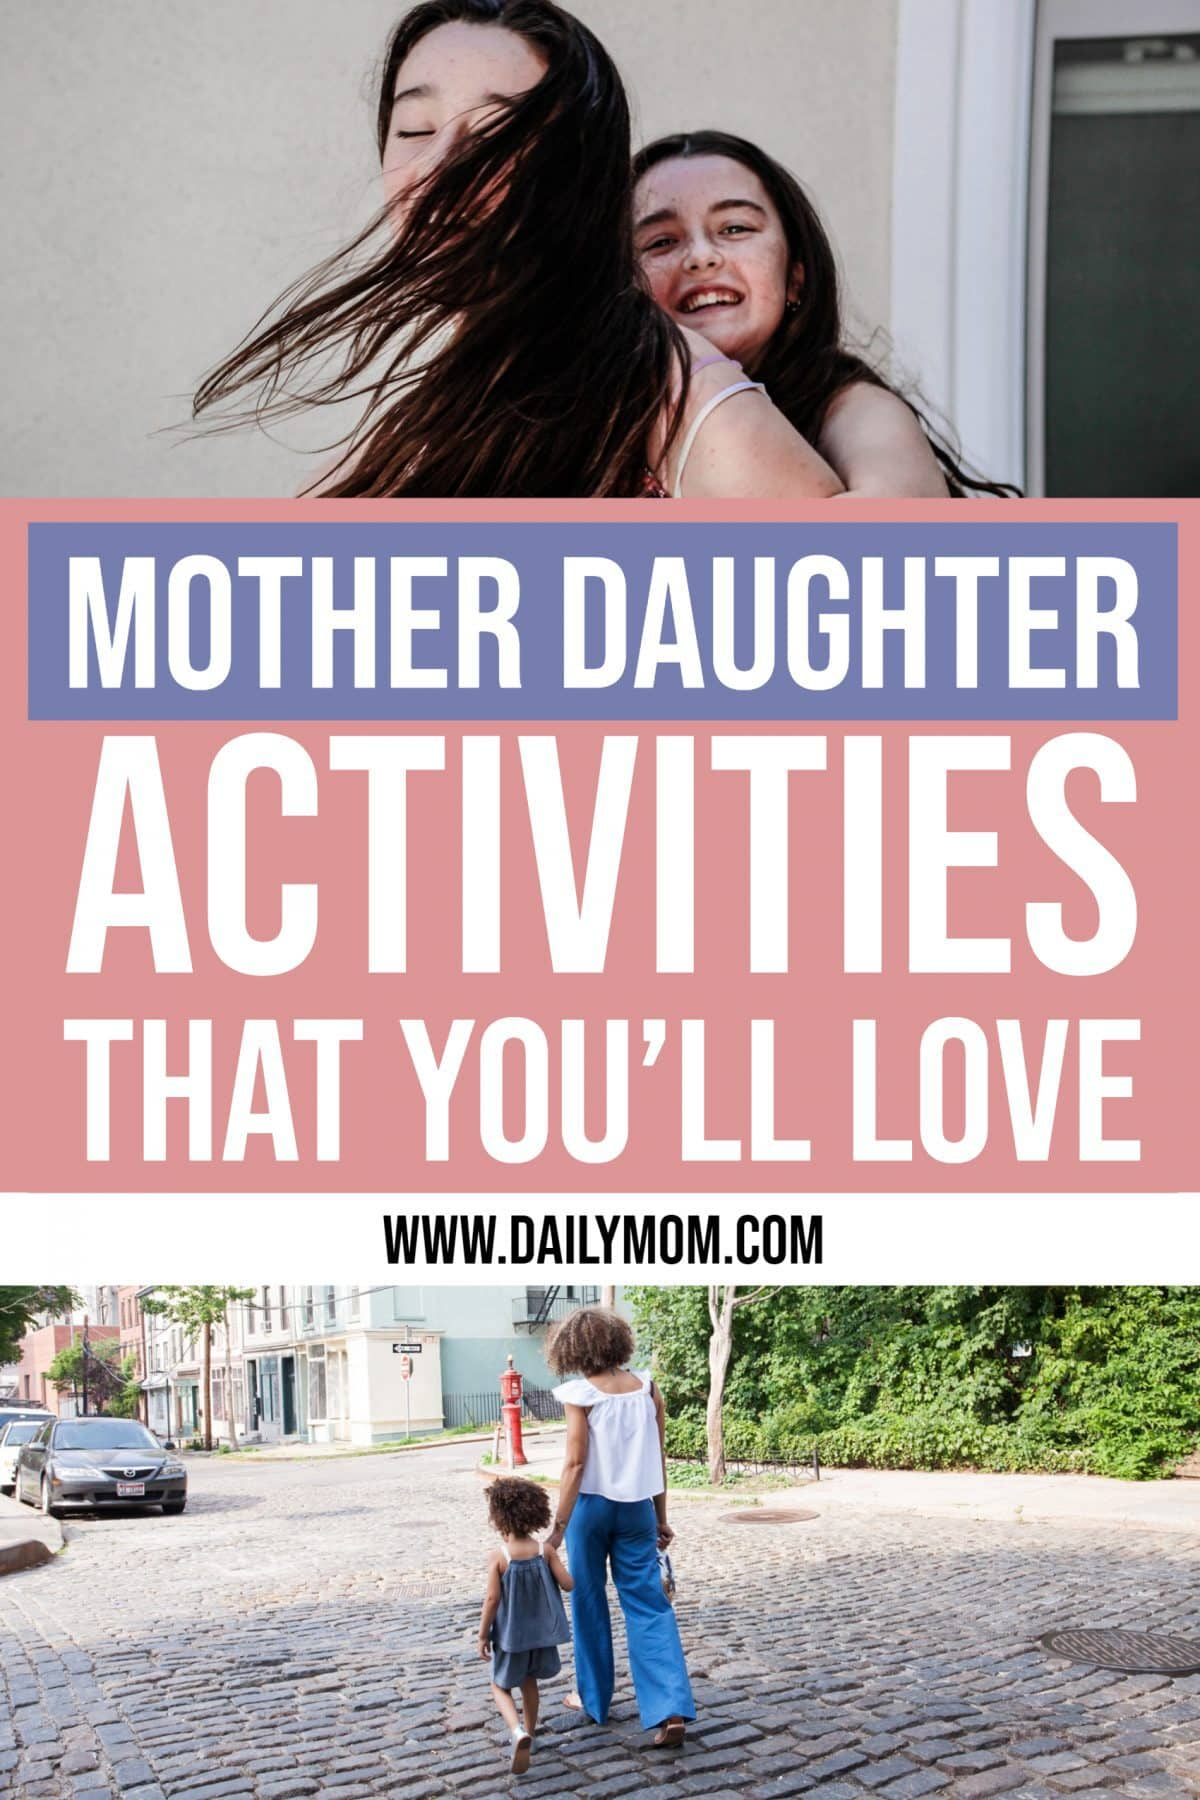 Daily Mom Parent Portal 30 Mother Daughter Activities That You'll Love